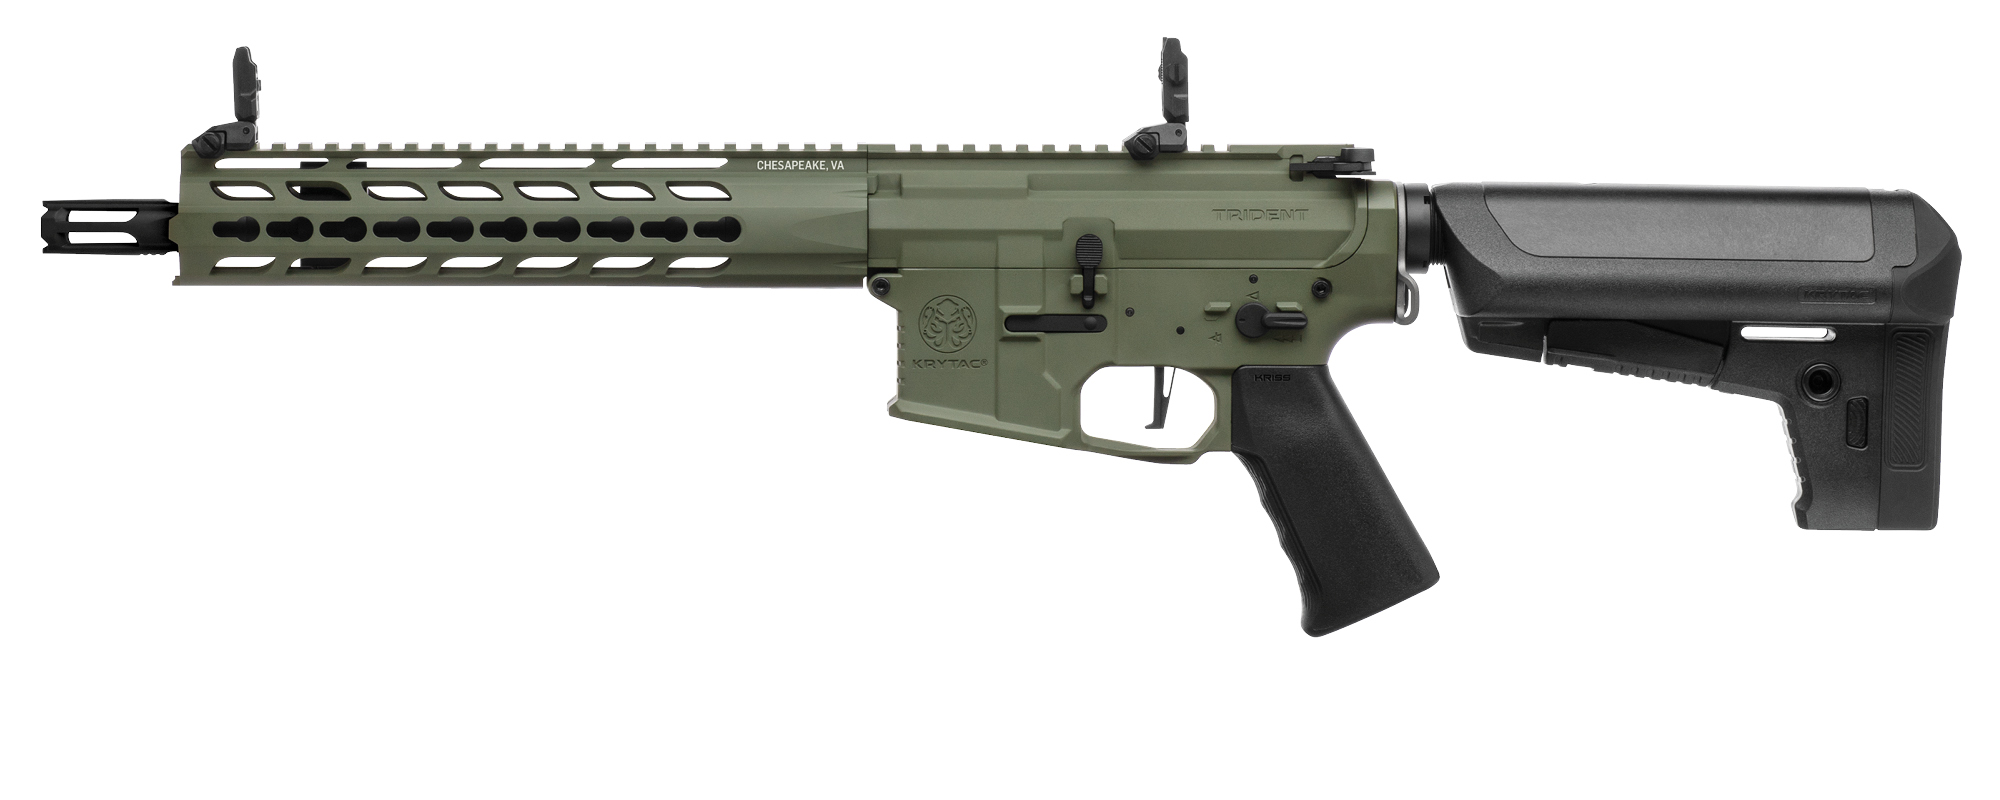 Trident MKII CRB Foliage Green